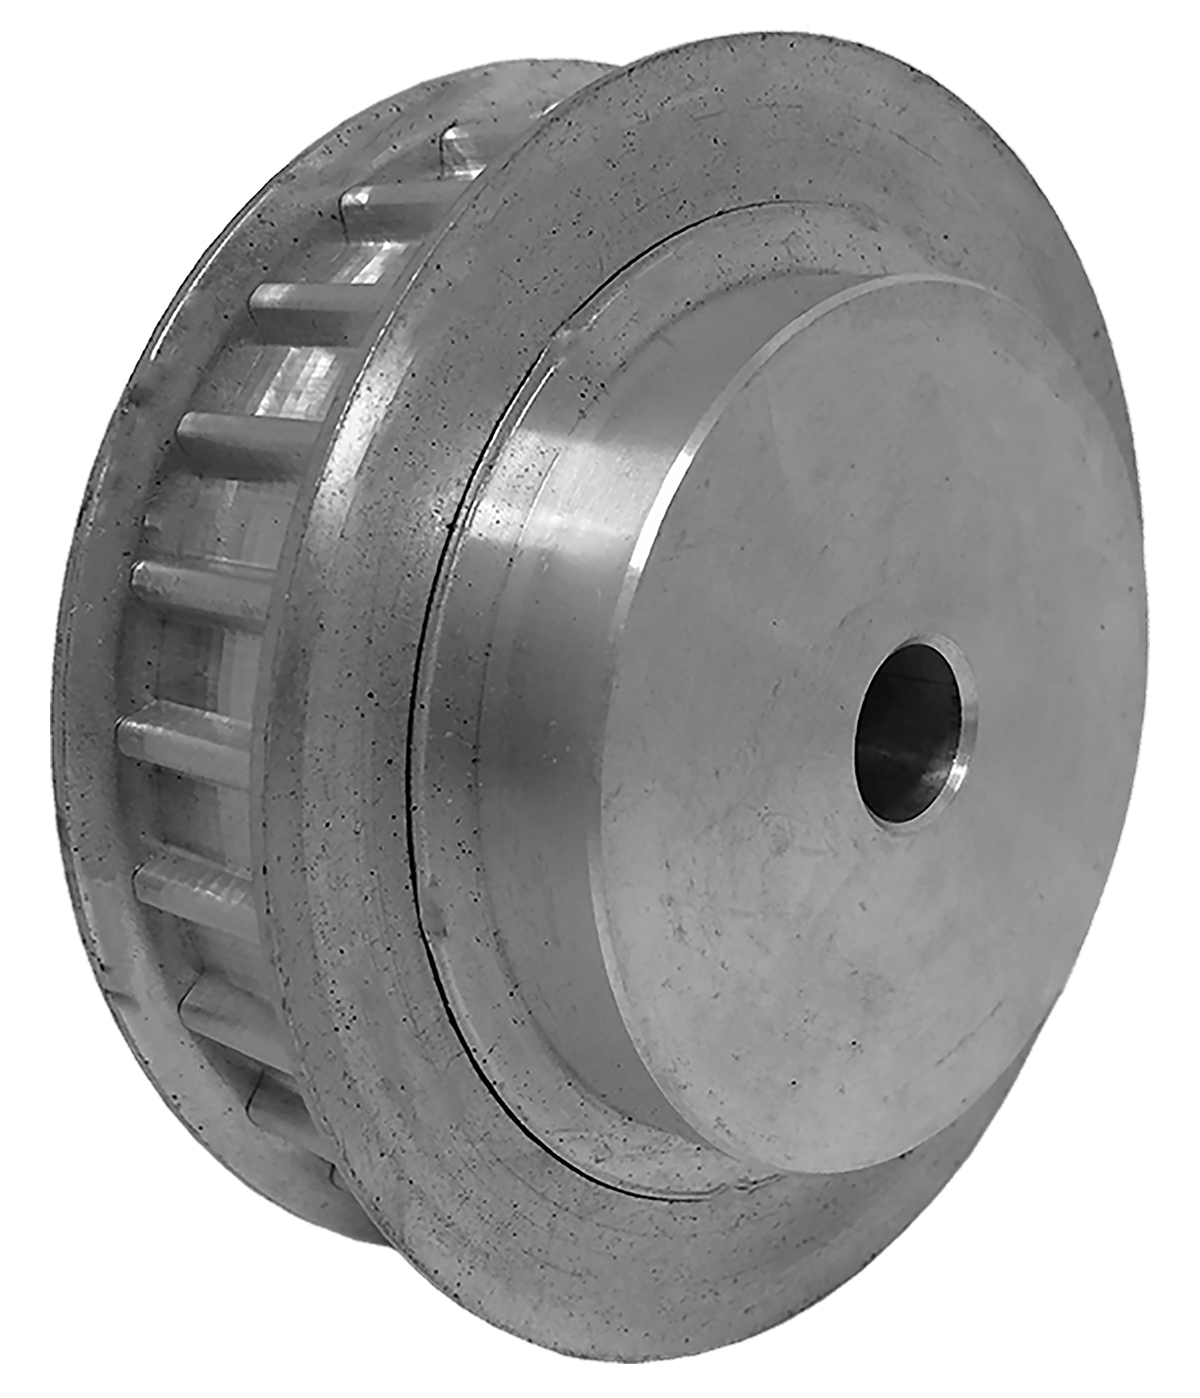 31AT10/27-2 - Aluminum Metric Pulleys